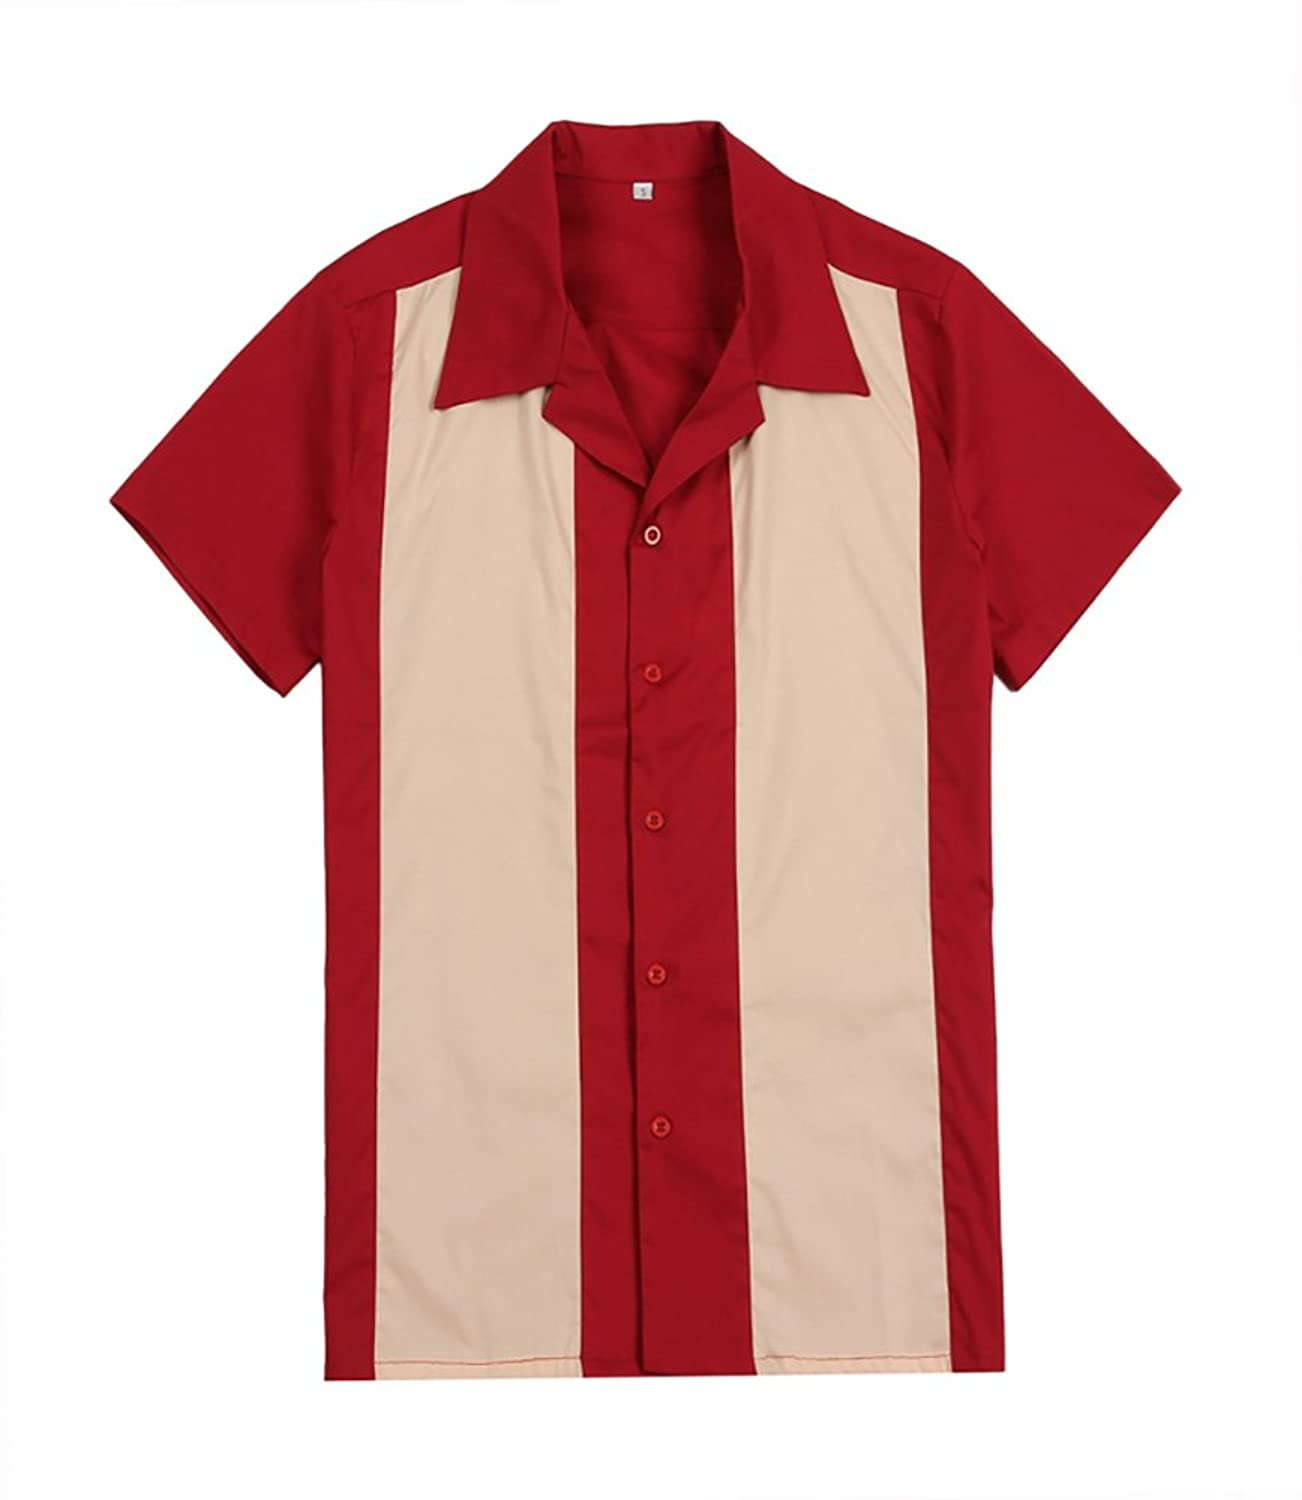 1950s Men's Costumes: Greaser, Elvis, Rockabilly, Prom Mens Rockabilly Vintage 50s Clothing Short Sleeve Bowling Shirts Red Cream $24.71 AT vintagedancer.com